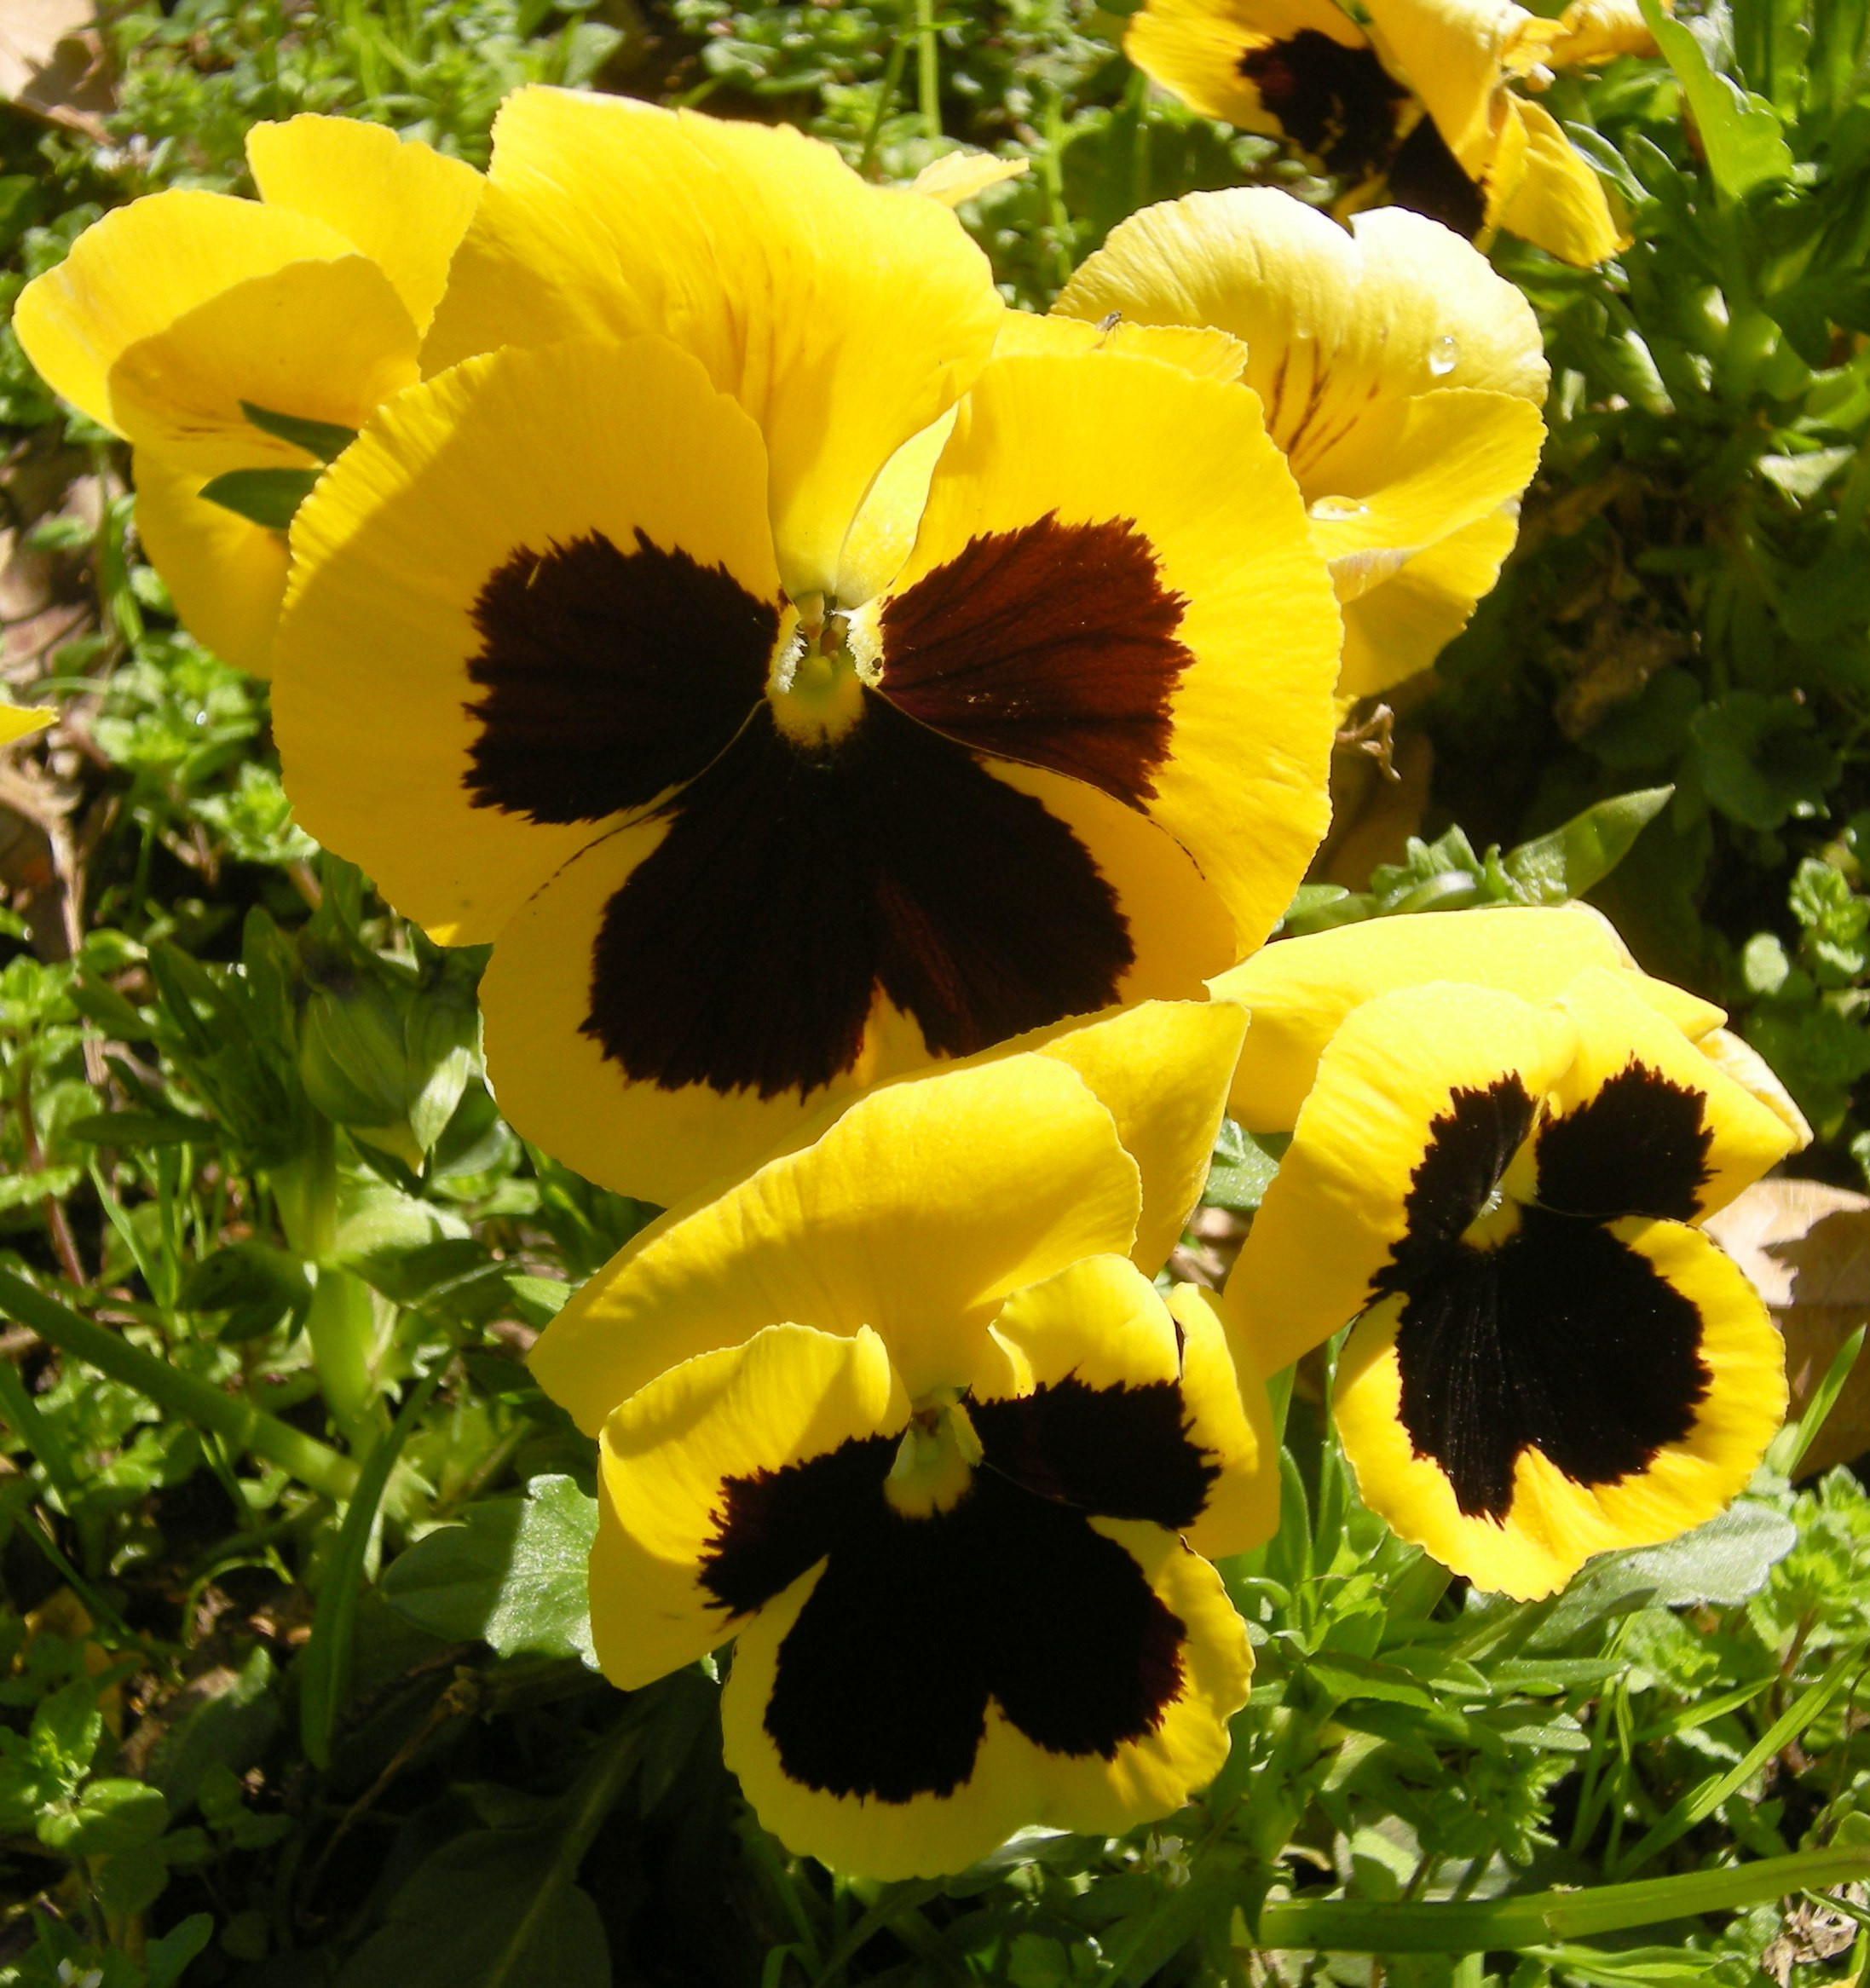 pansy flower ring vase of flowers thetreasuresofnatures blog intended for the pansy must be harvested when blooming in spring the parts used for medicinal purposes are the flowers when harvested it must be cut close to the